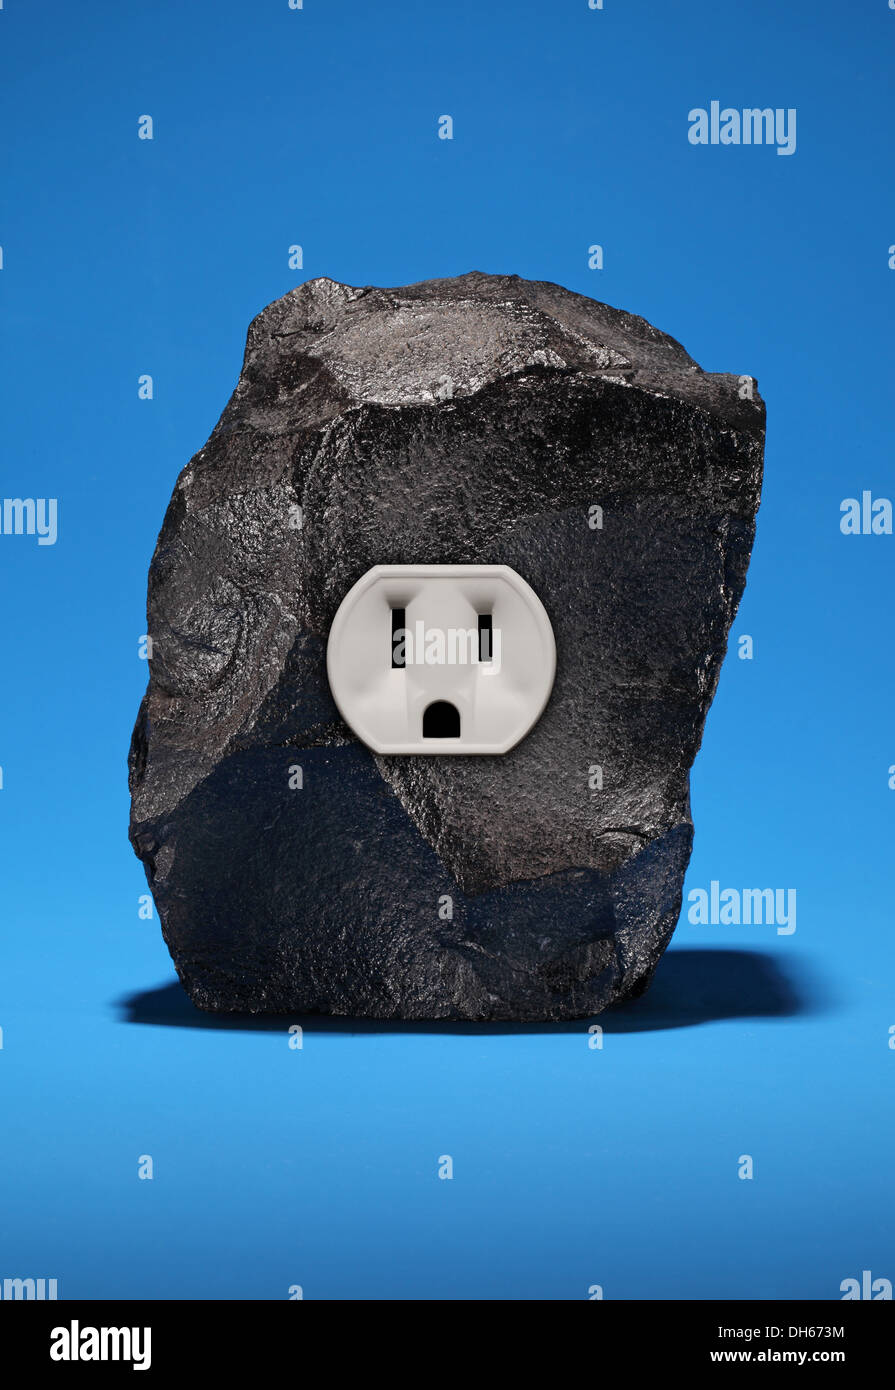 A large piece of black coal with a single electrical outlet. Bright blue background - Stock Image